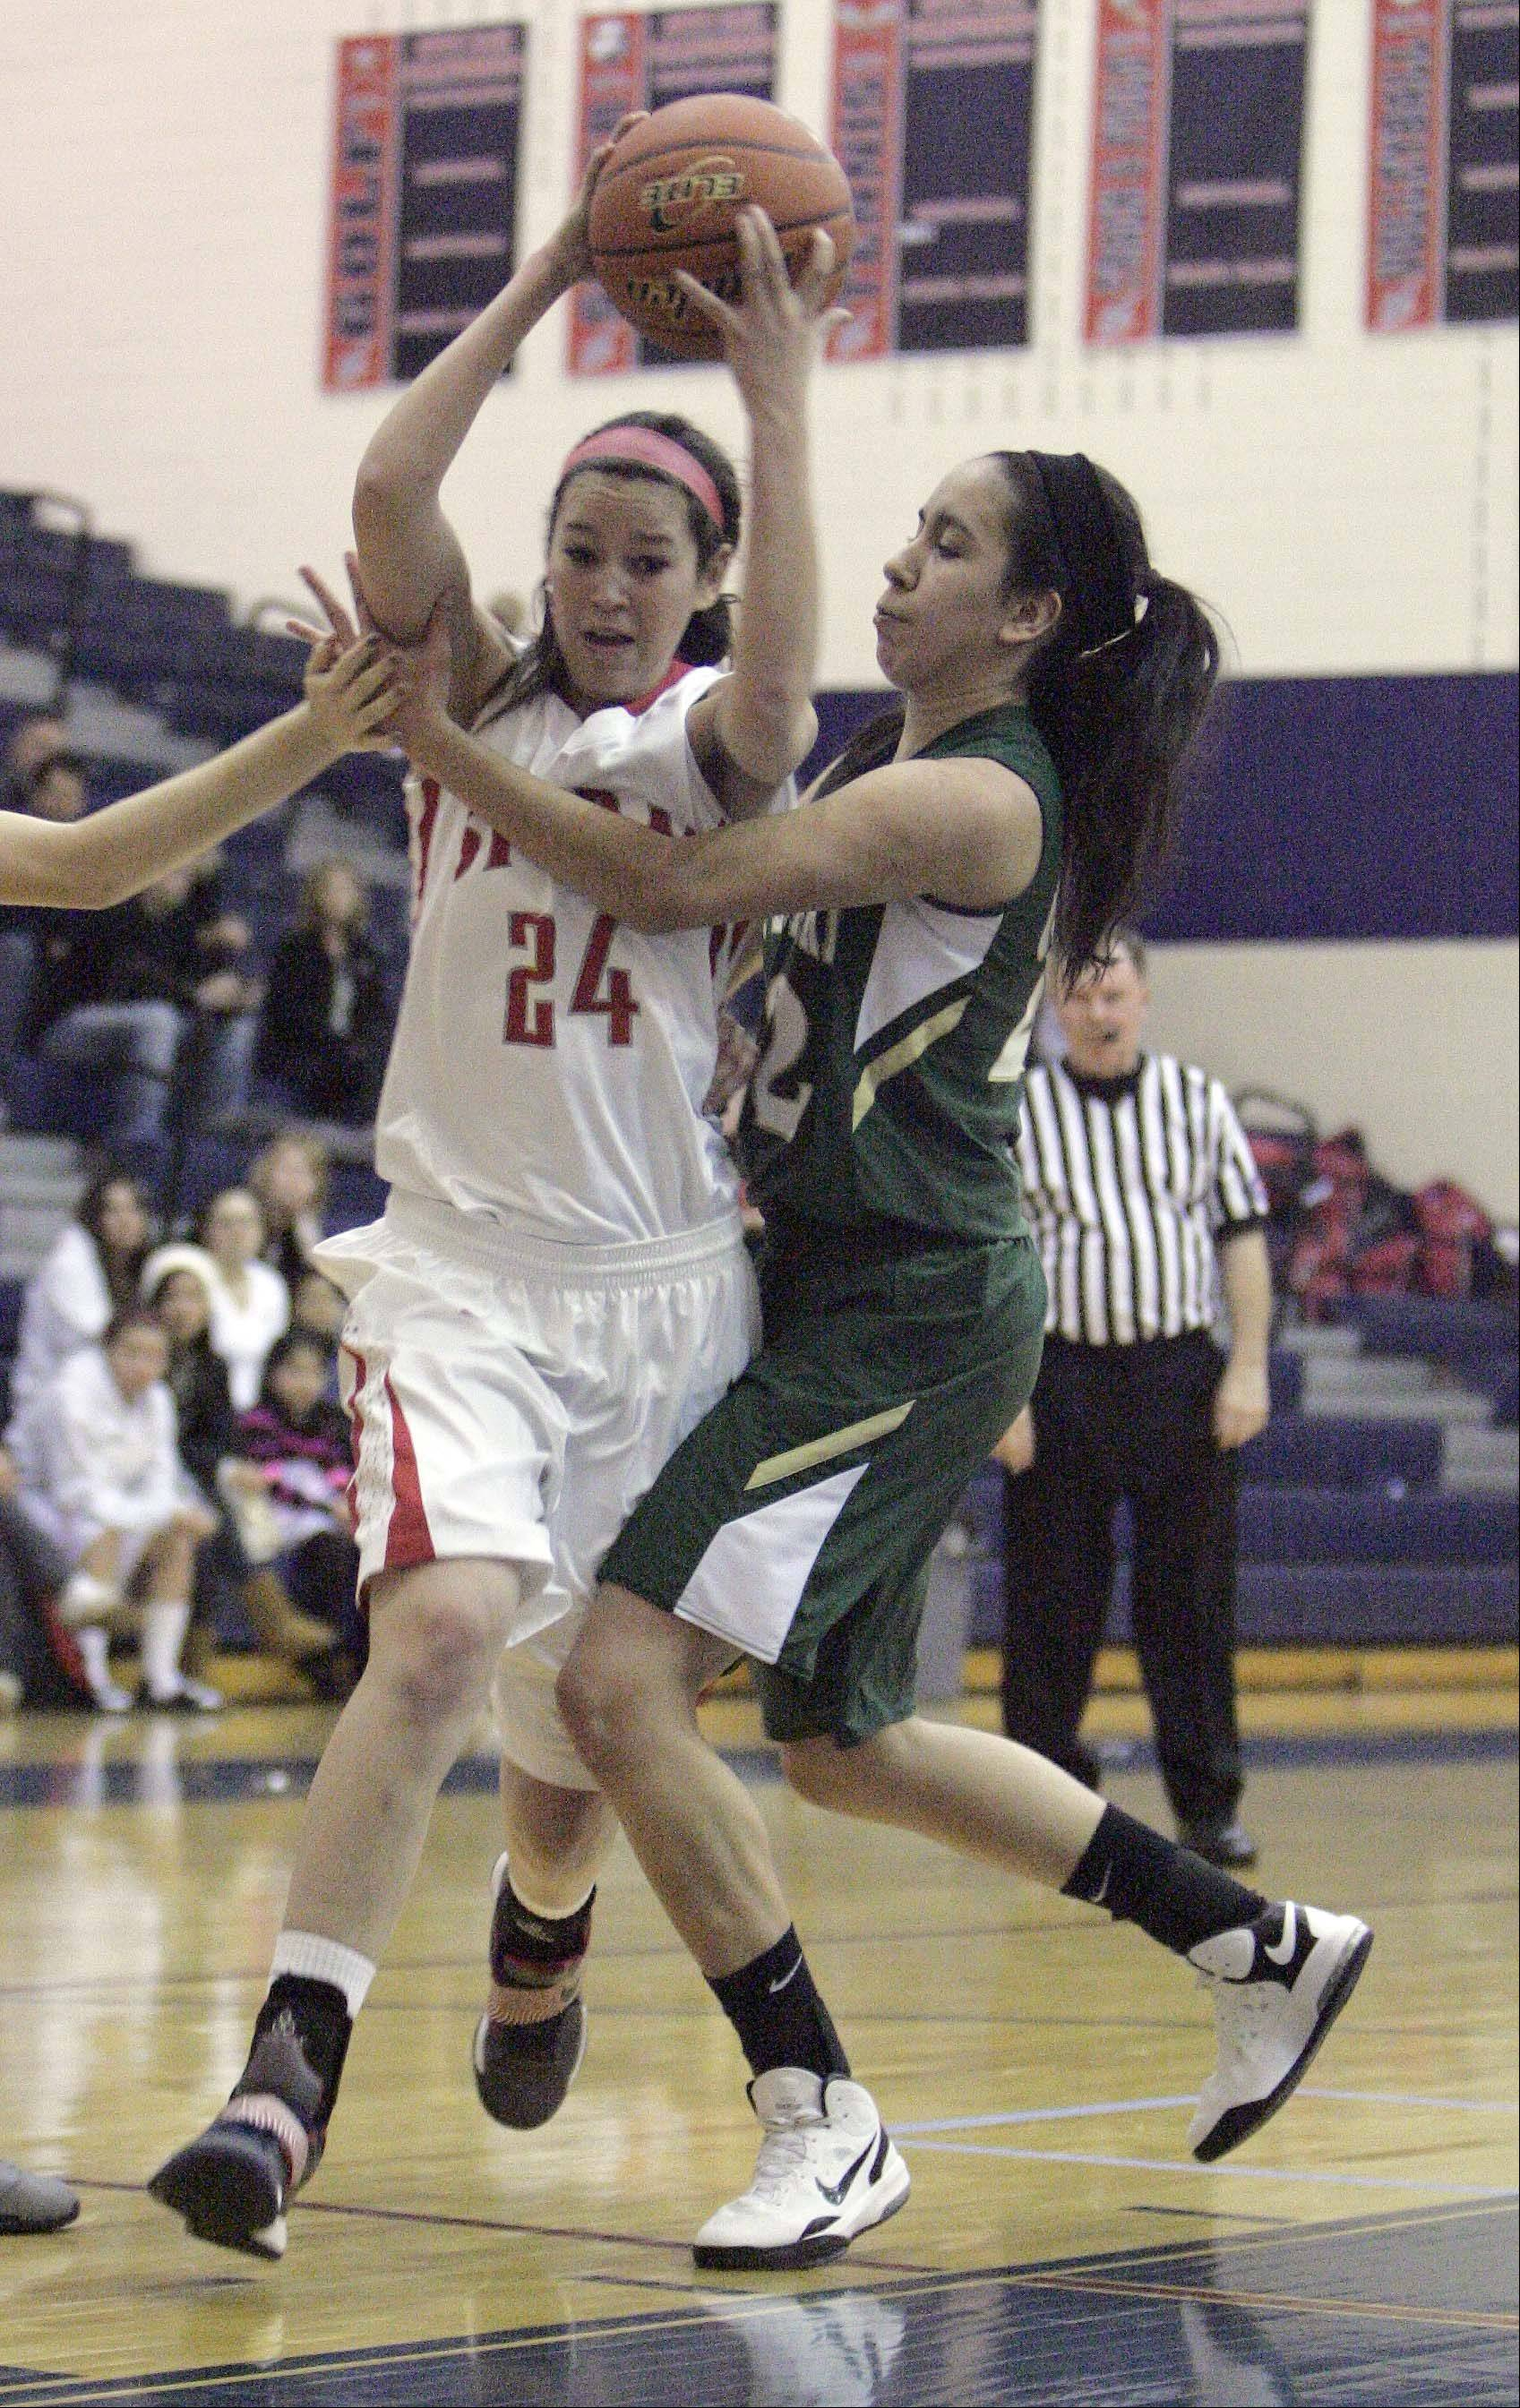 South Elgin hangs on vs. St. Edward